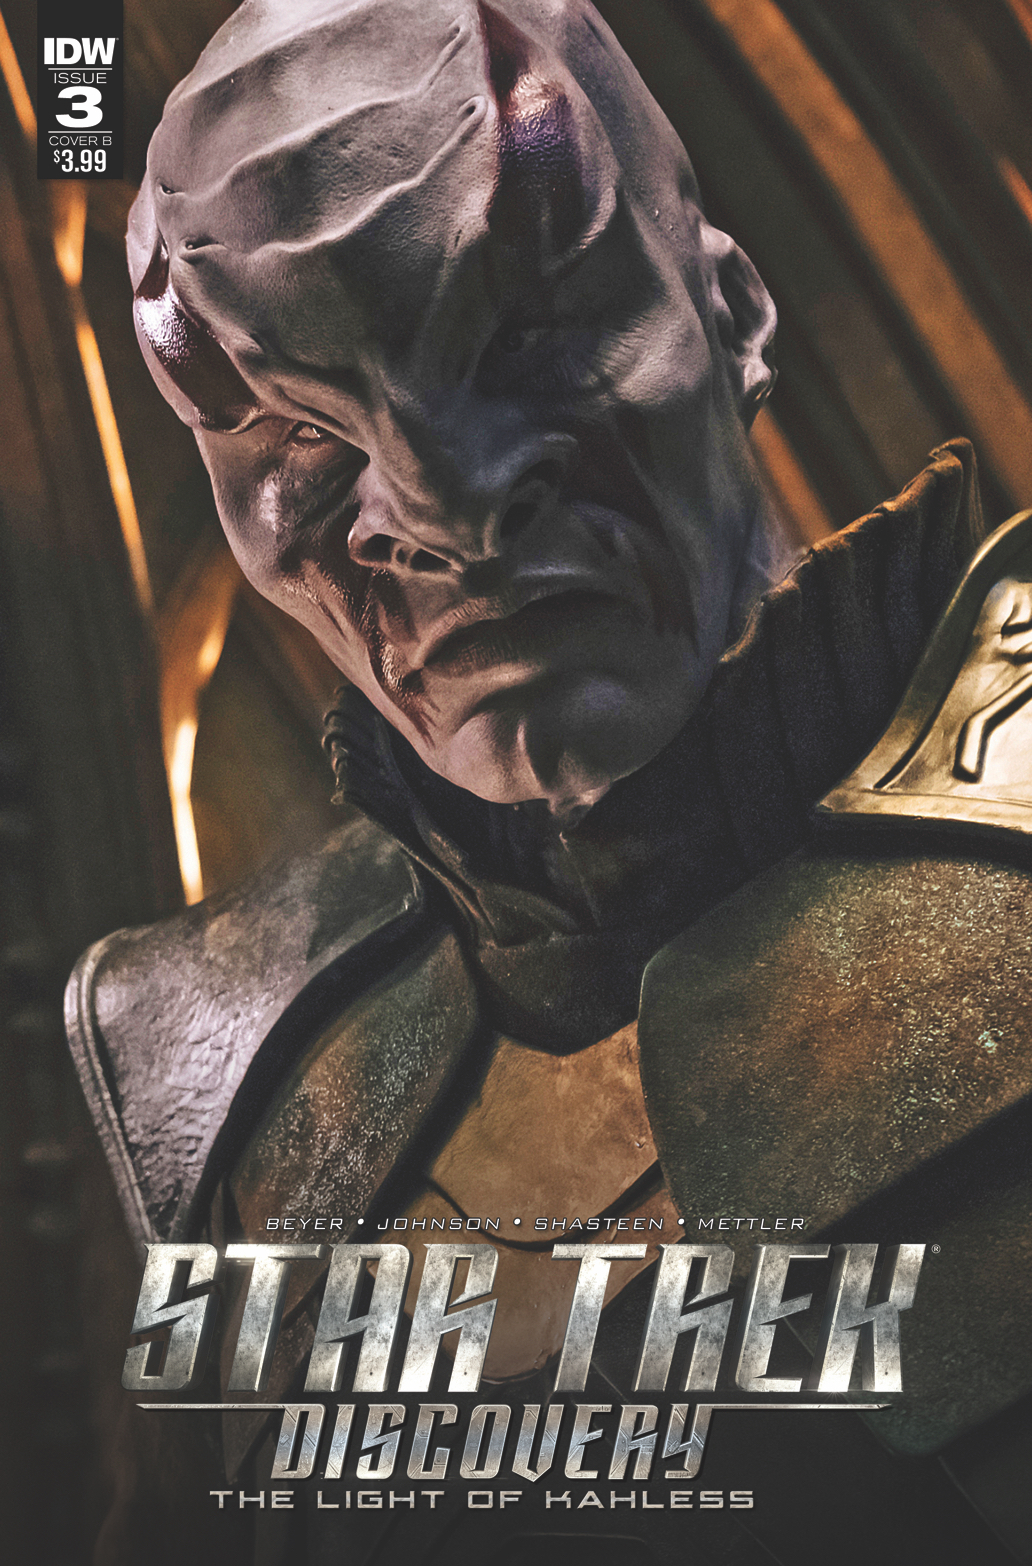 STAR TREK DISCOVERY #3 CVR B PHOTO